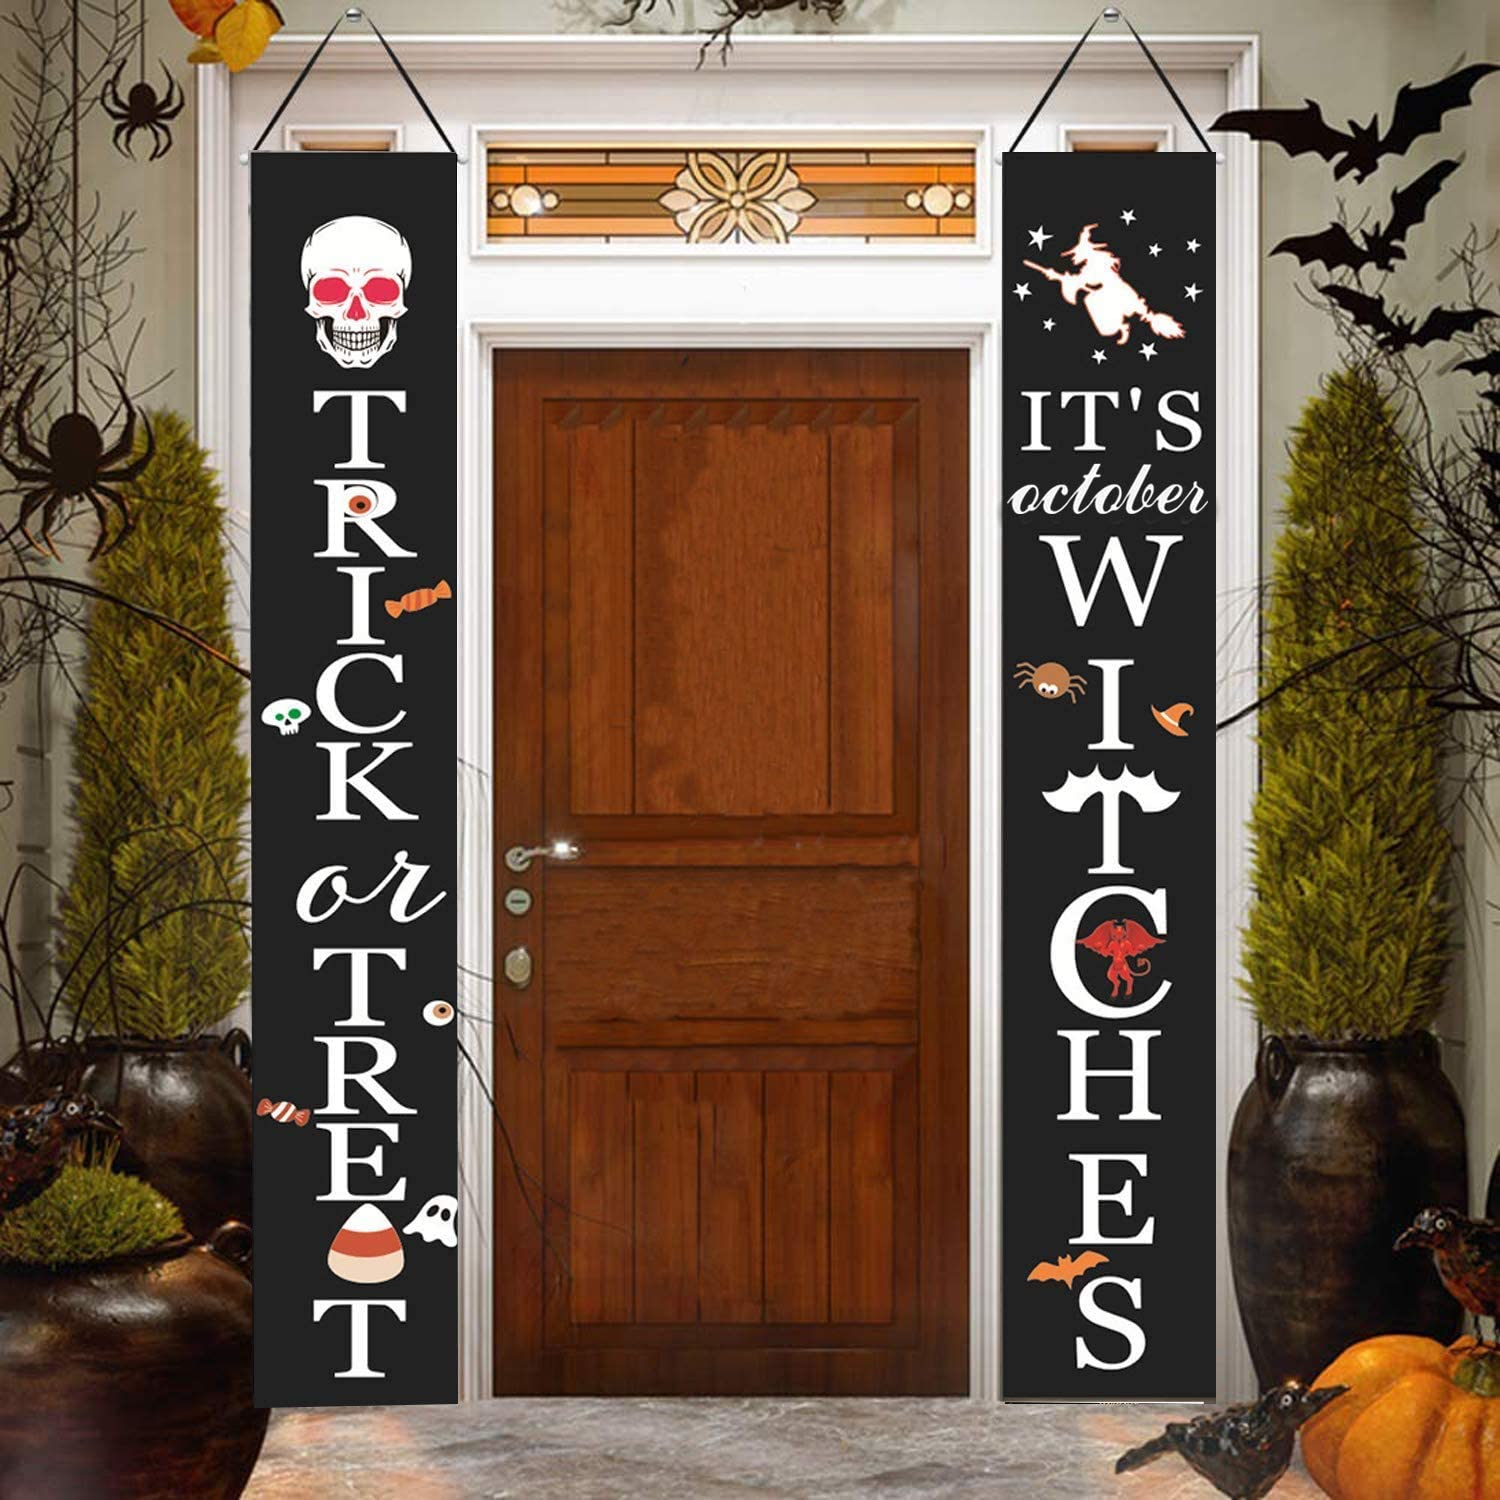 Choies Halloween Decorations Outdoor Decor,It's Witches & Trick or Treat Decorations Sign Outdoor Hanging Sign for Front Door or Indoor Home Decor Halloween Decor Large Banner